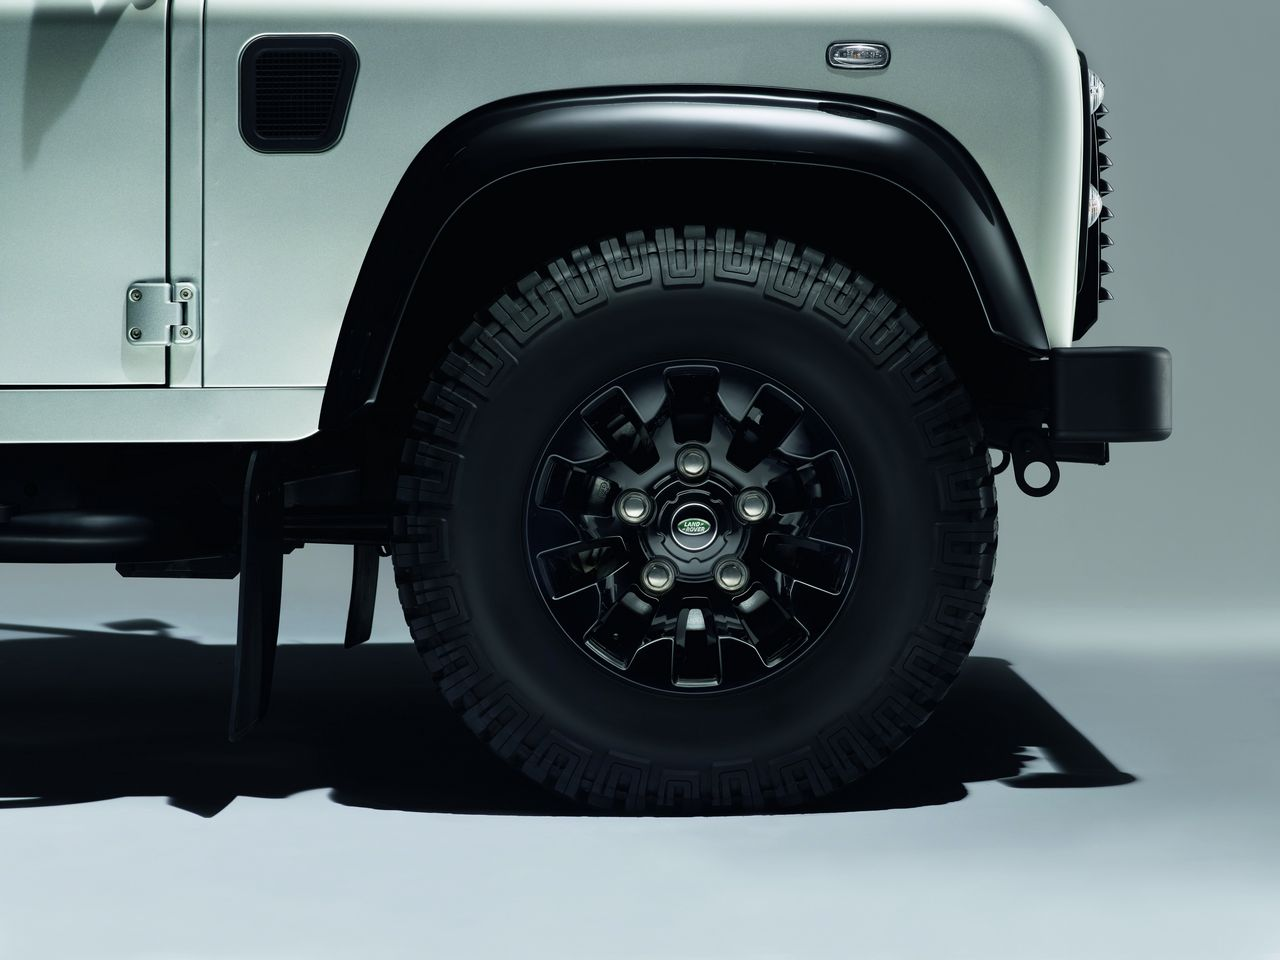 anteprima-salone-di-ginevra-2014-land-rover-defender-black-pack-e-silver-pack-special-edition-0-100_4